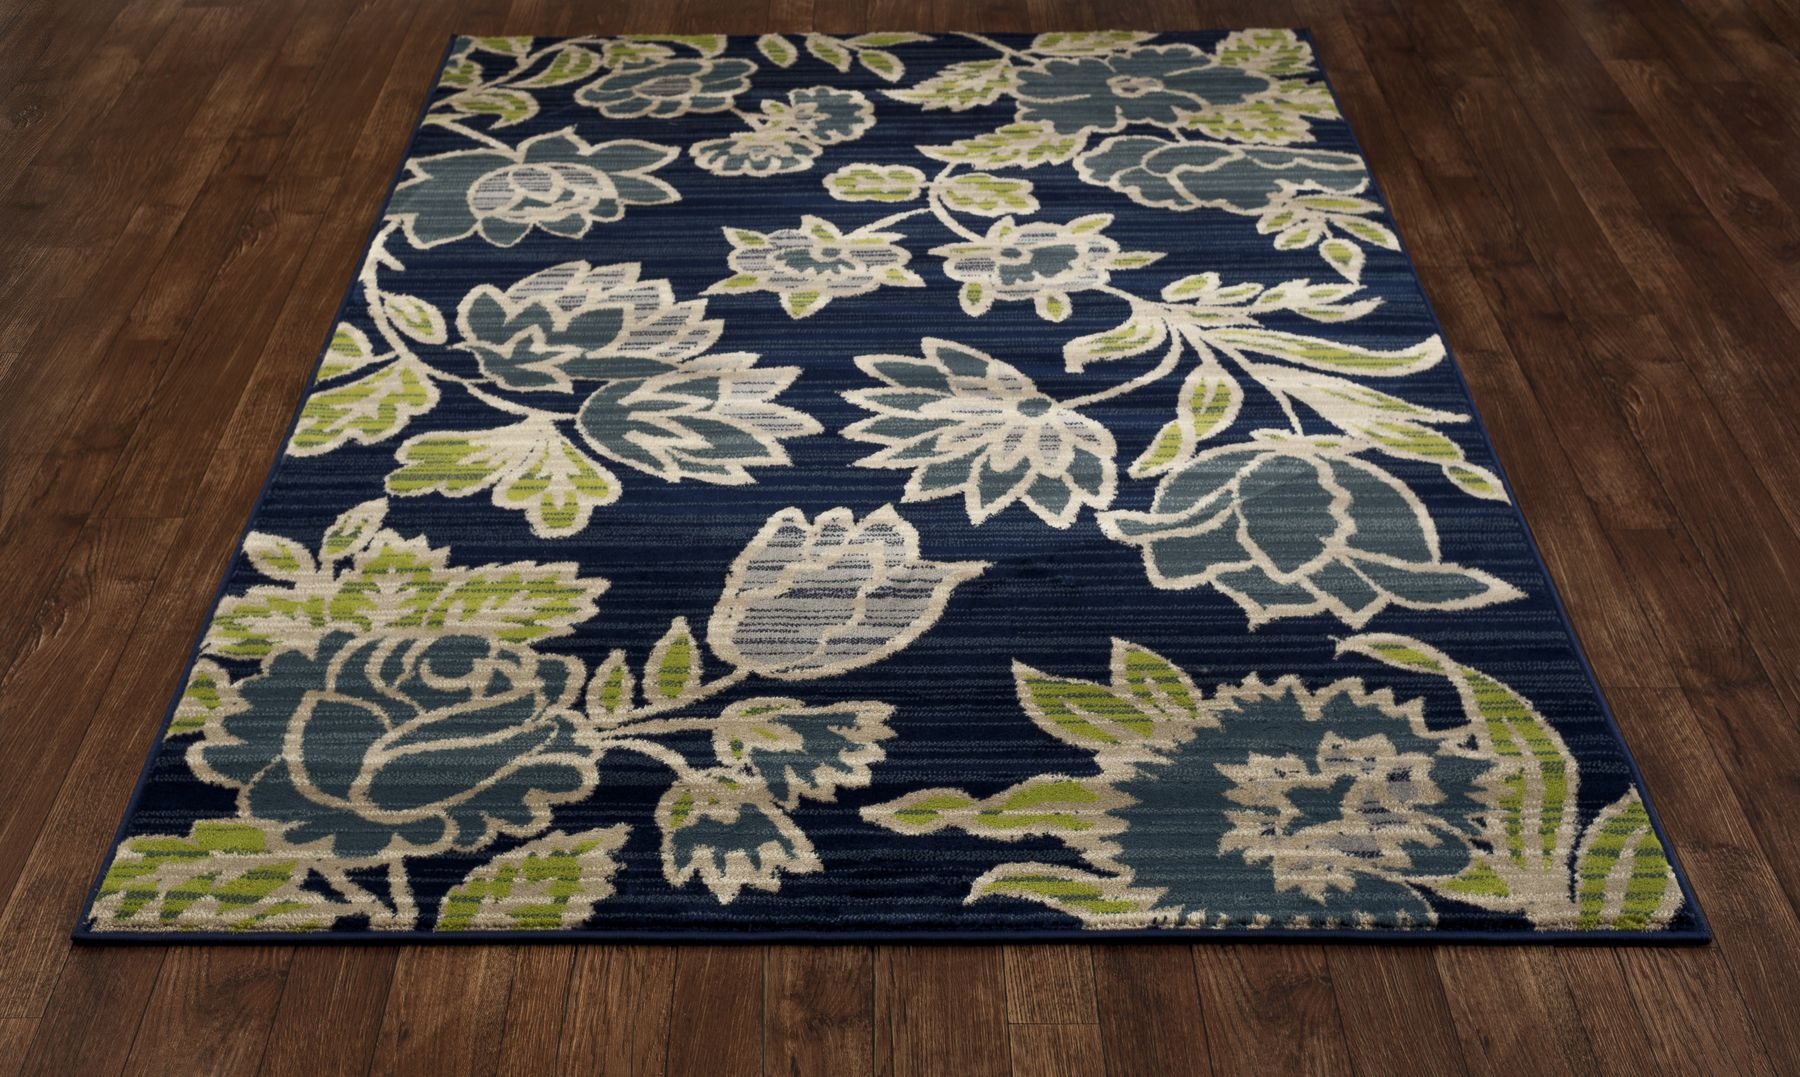 Danneel Color Navy Beige Light Green Size 7 10 Round Colorful Rugs Light Green Woven Rug